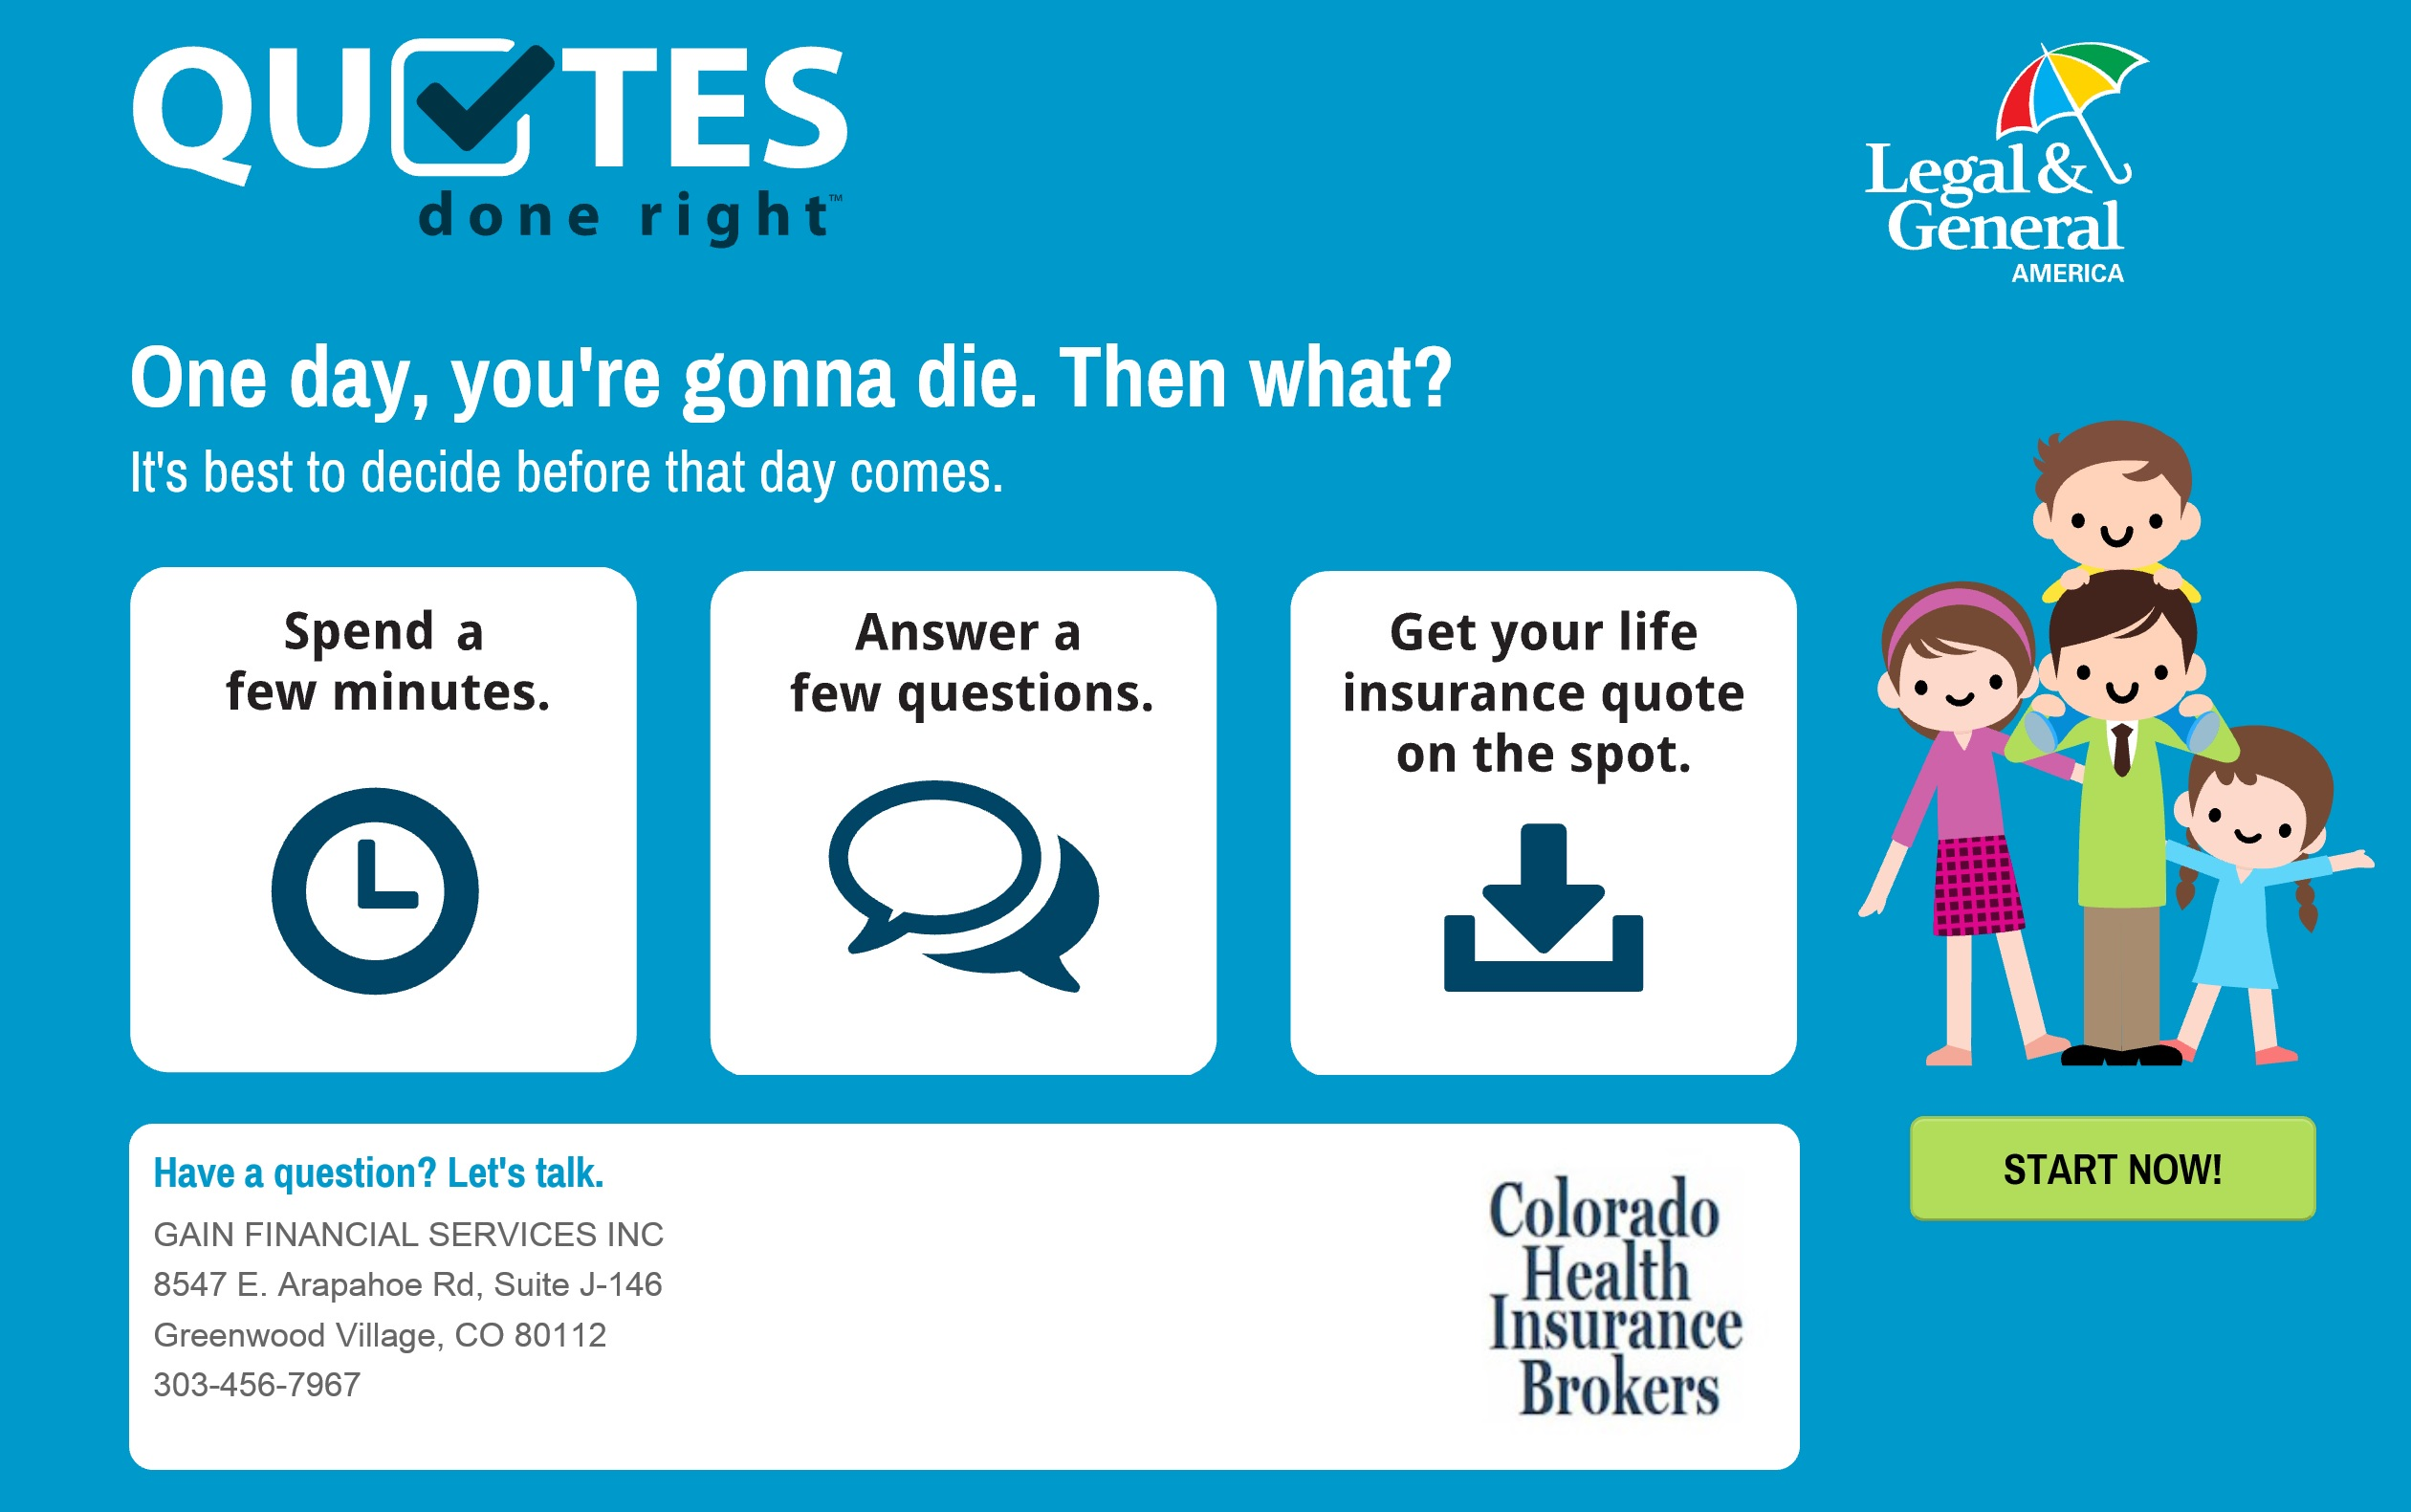 Affordable Life Insurance Quotes Colorado Health Insurance  Fast And Affordable Life Insurance